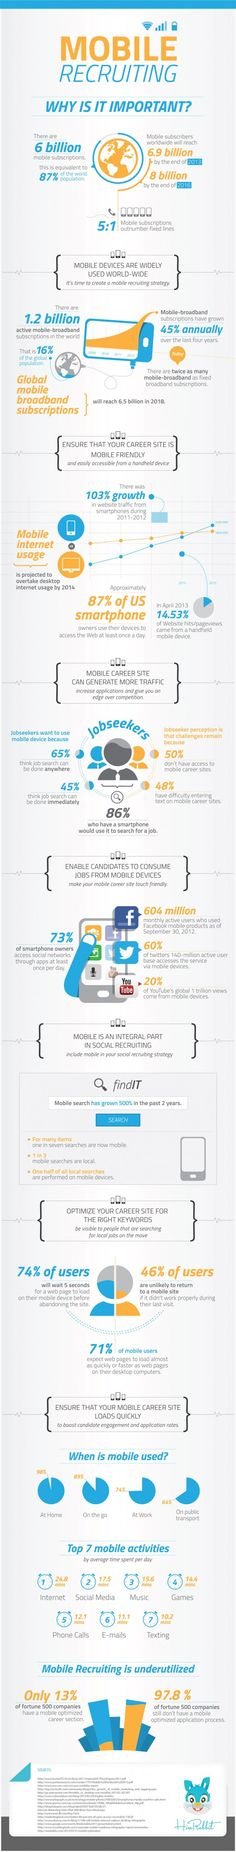 precision nutrition pregnancy nutrition 2 What to eat during pregnancy [Infograp. - precision nutrition pregnancy nutrition 2 What to eat during pregnancy [Infographic]: How food affe - Marketing Digital, Content Marketing, Internet Marketing, Online Marketing, Mobile Marketing, Facebook Marketing, Affiliate Marketing, Online Advertising, Le Social